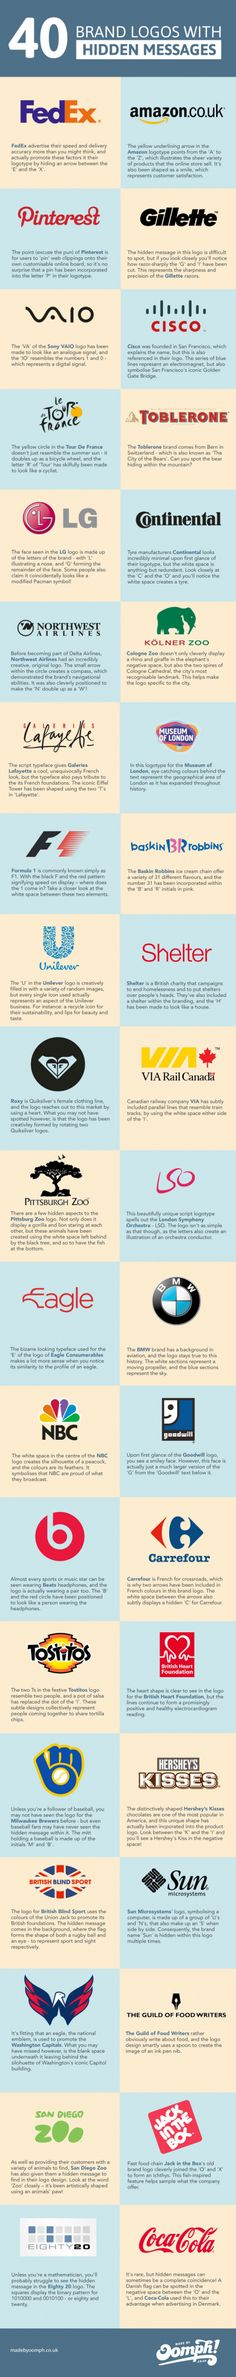 40 Brand Logos With Hidden Messages